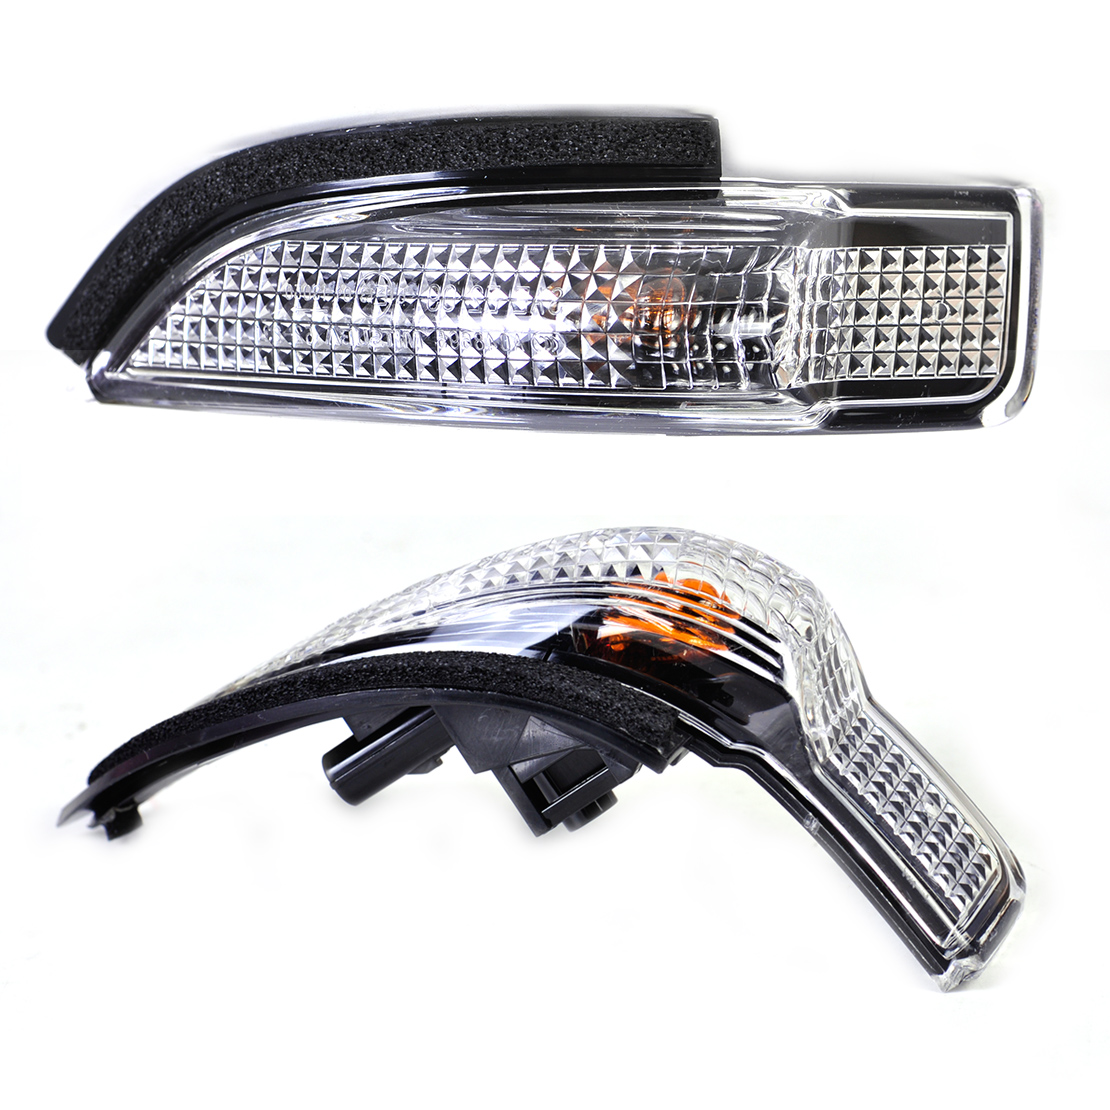 2PIN Rear view Side Mirror Indicator Turn Signal Lights Lamp fit for Toyota Camry Avalon Corolla RAV4 Prius C 81730-02140